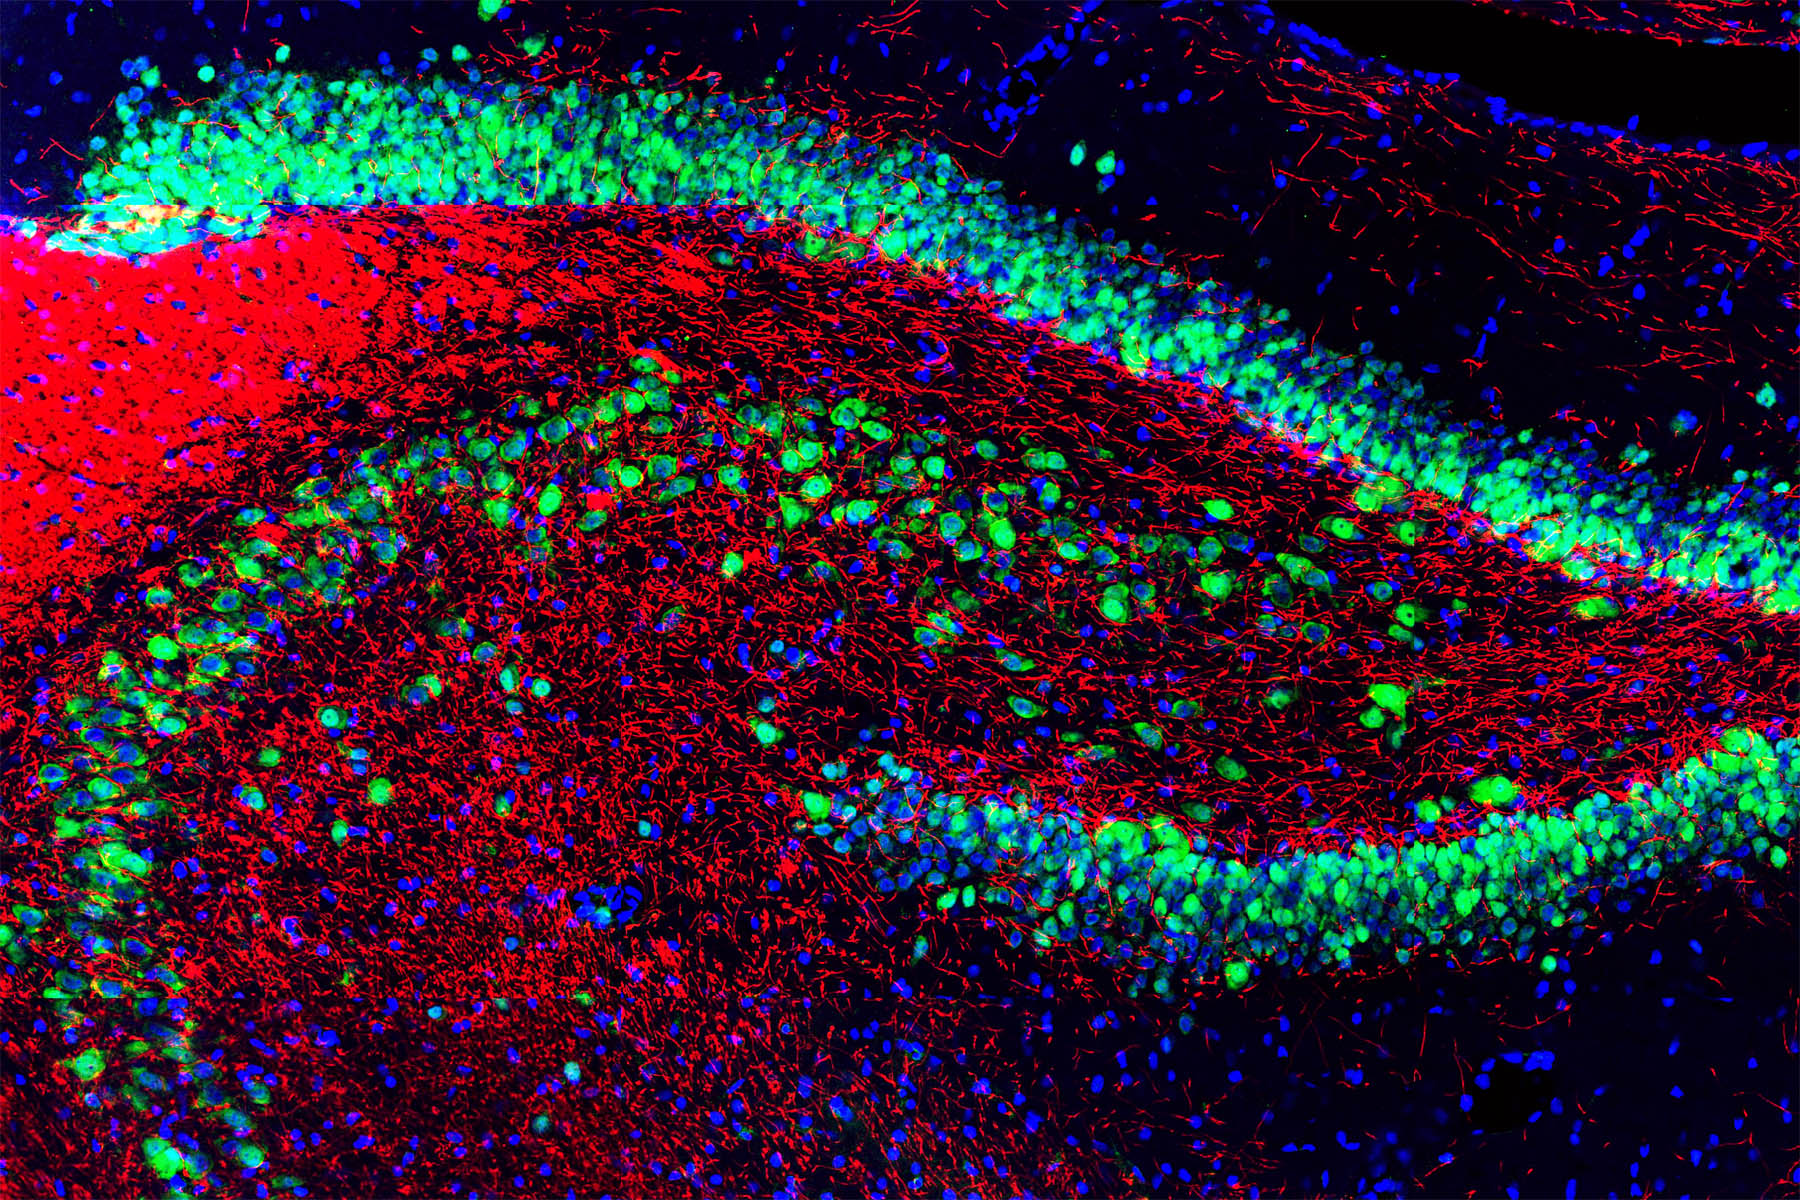 NeuN staining in green and myelin basic protein in red on a section of rat hippocampus. Antibody staining and image courtesy of EnCor Biotechnology Inc.